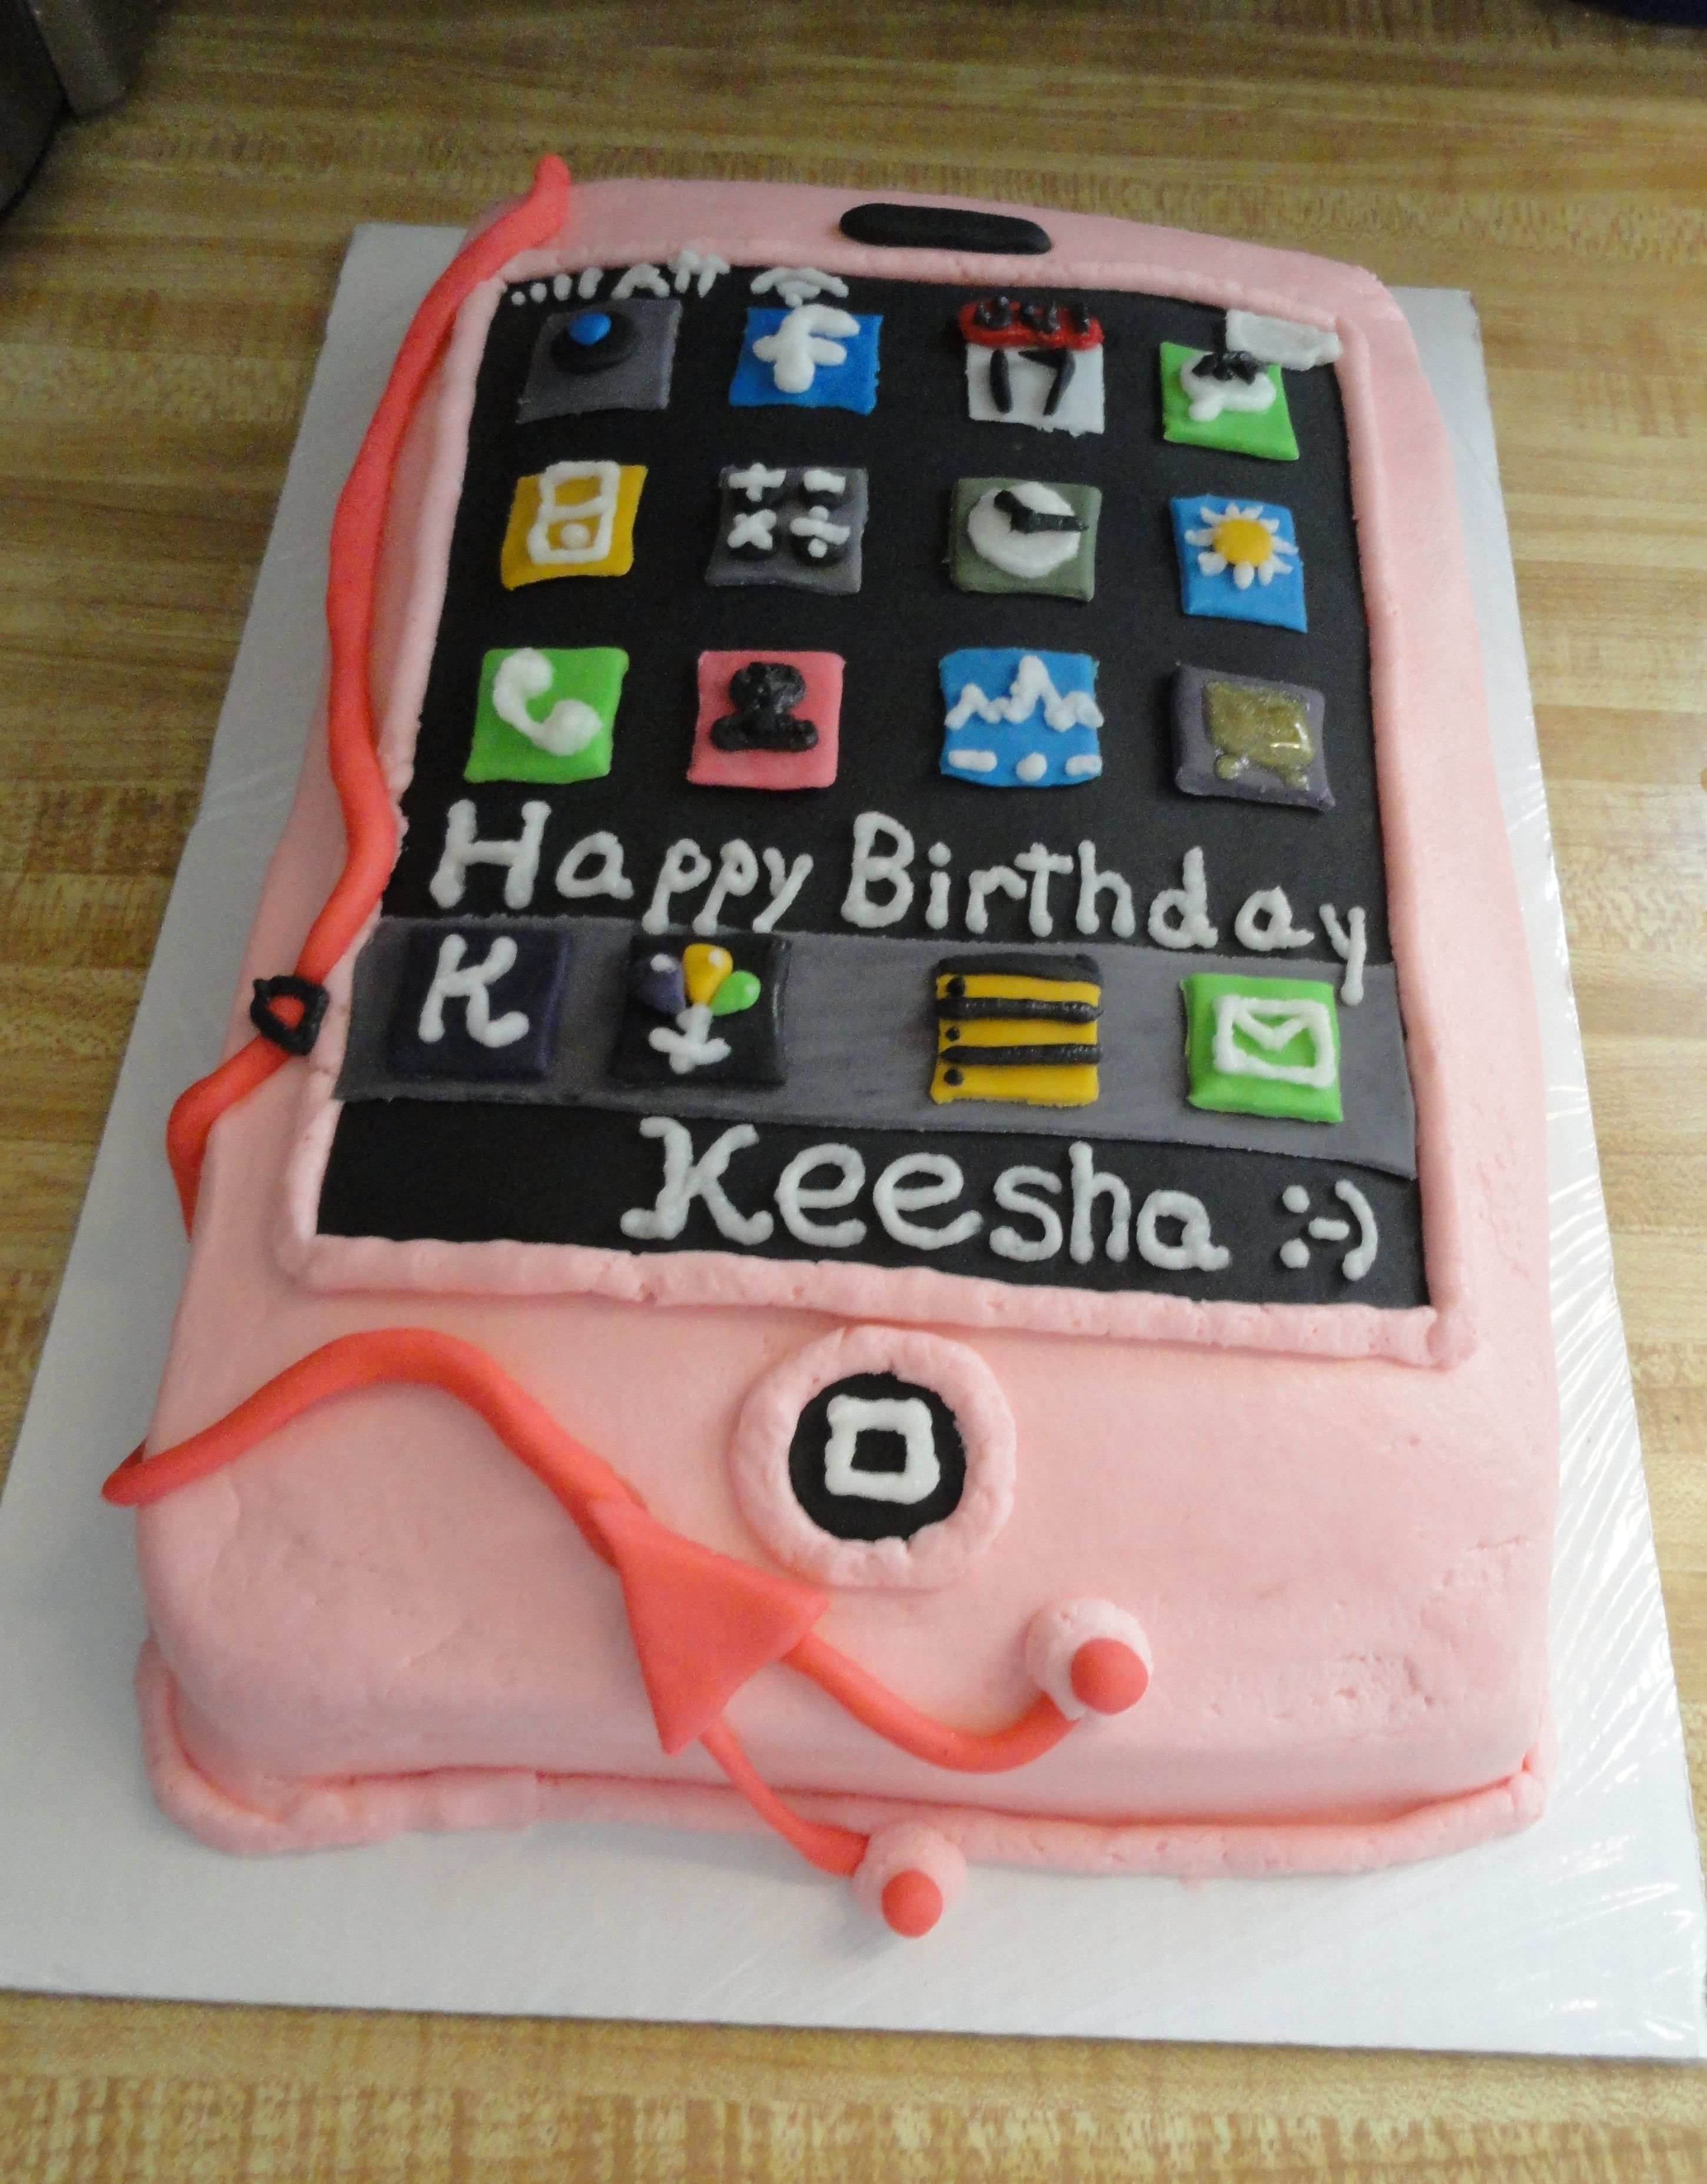 Cake ideas on pinterest pirate cakes marshmallow fondant and - Cell Phone Cake Ideas White Chocolate Cake With Ganache Covered Marshmallow